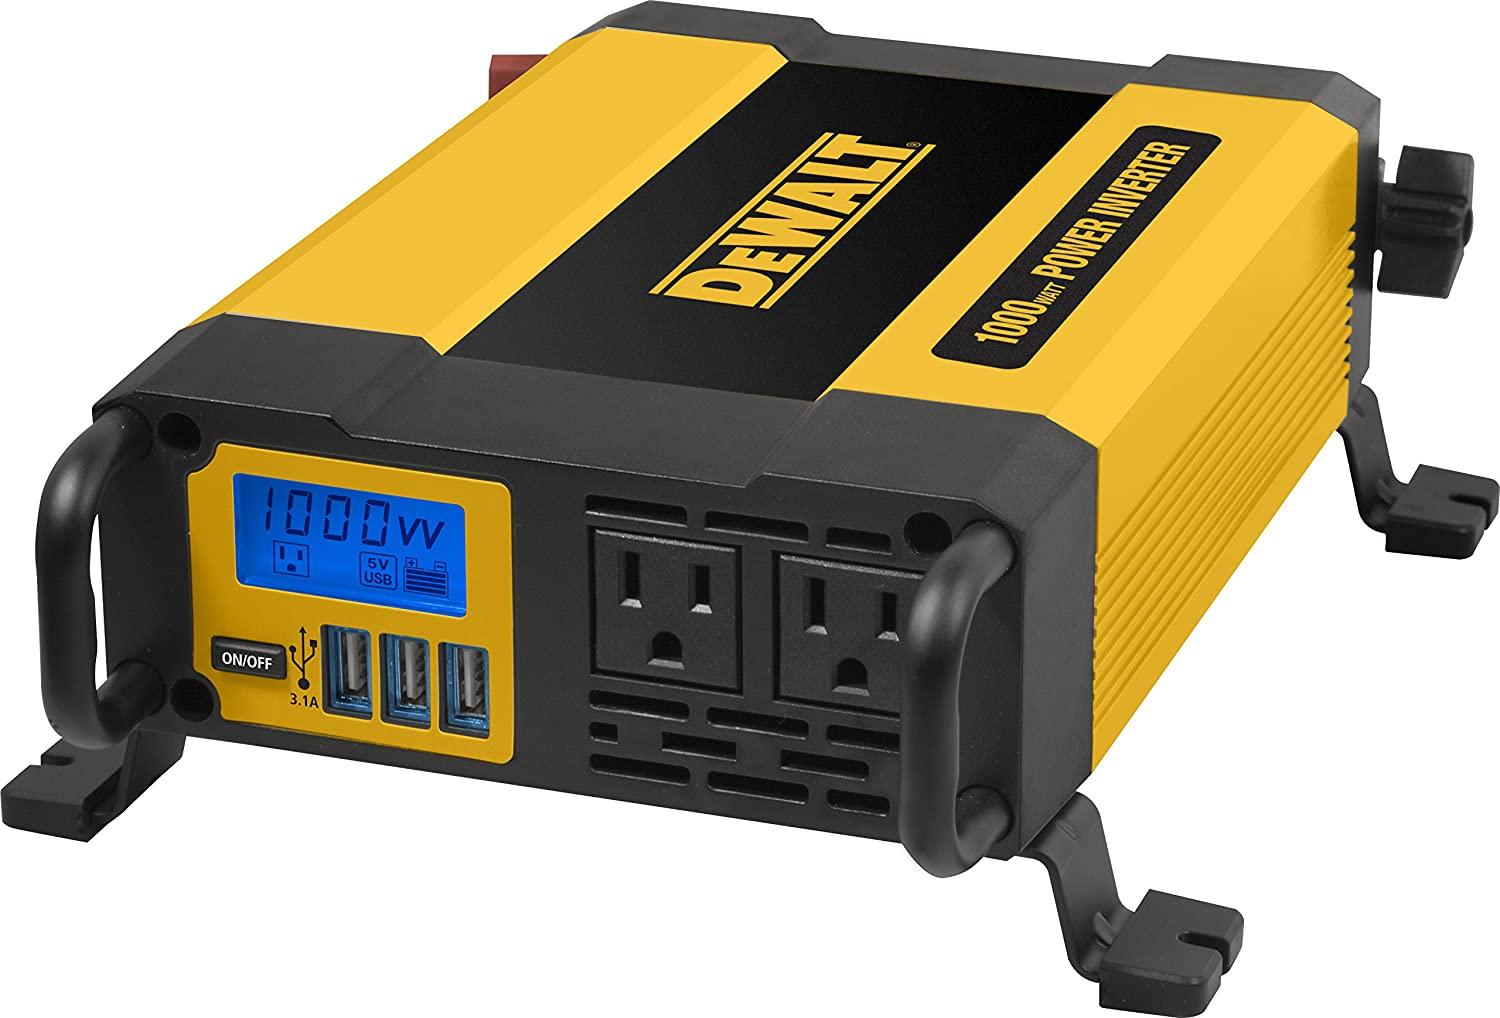 DEWALT DXAEPI1000 Power Inverter with LCD Display: Dual 120V AC outlets, 3.1A USB Ports, Battery Clamps